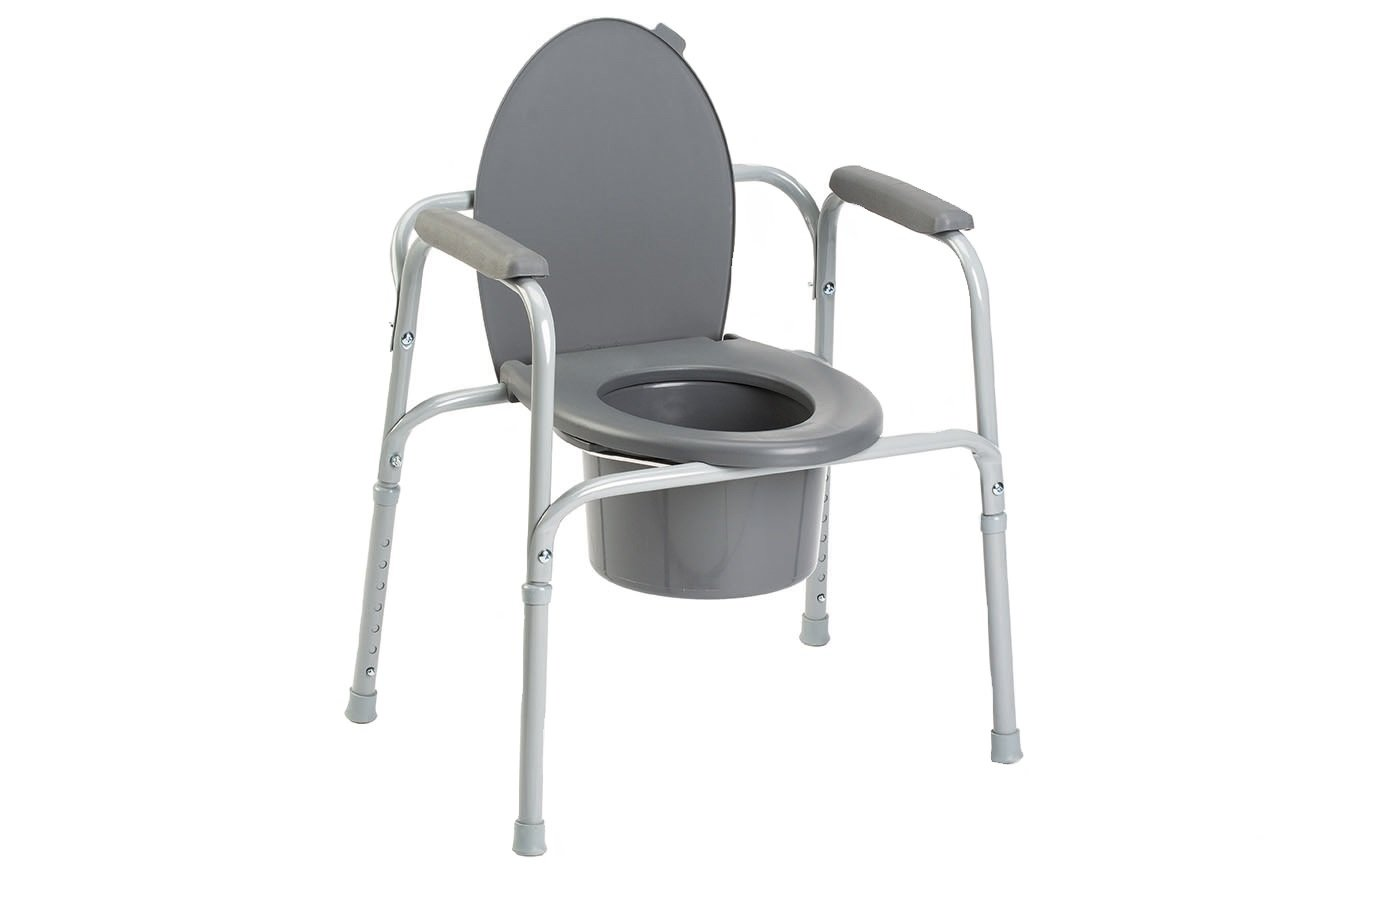 Invacare All-in-one Commode 96301 9630-1